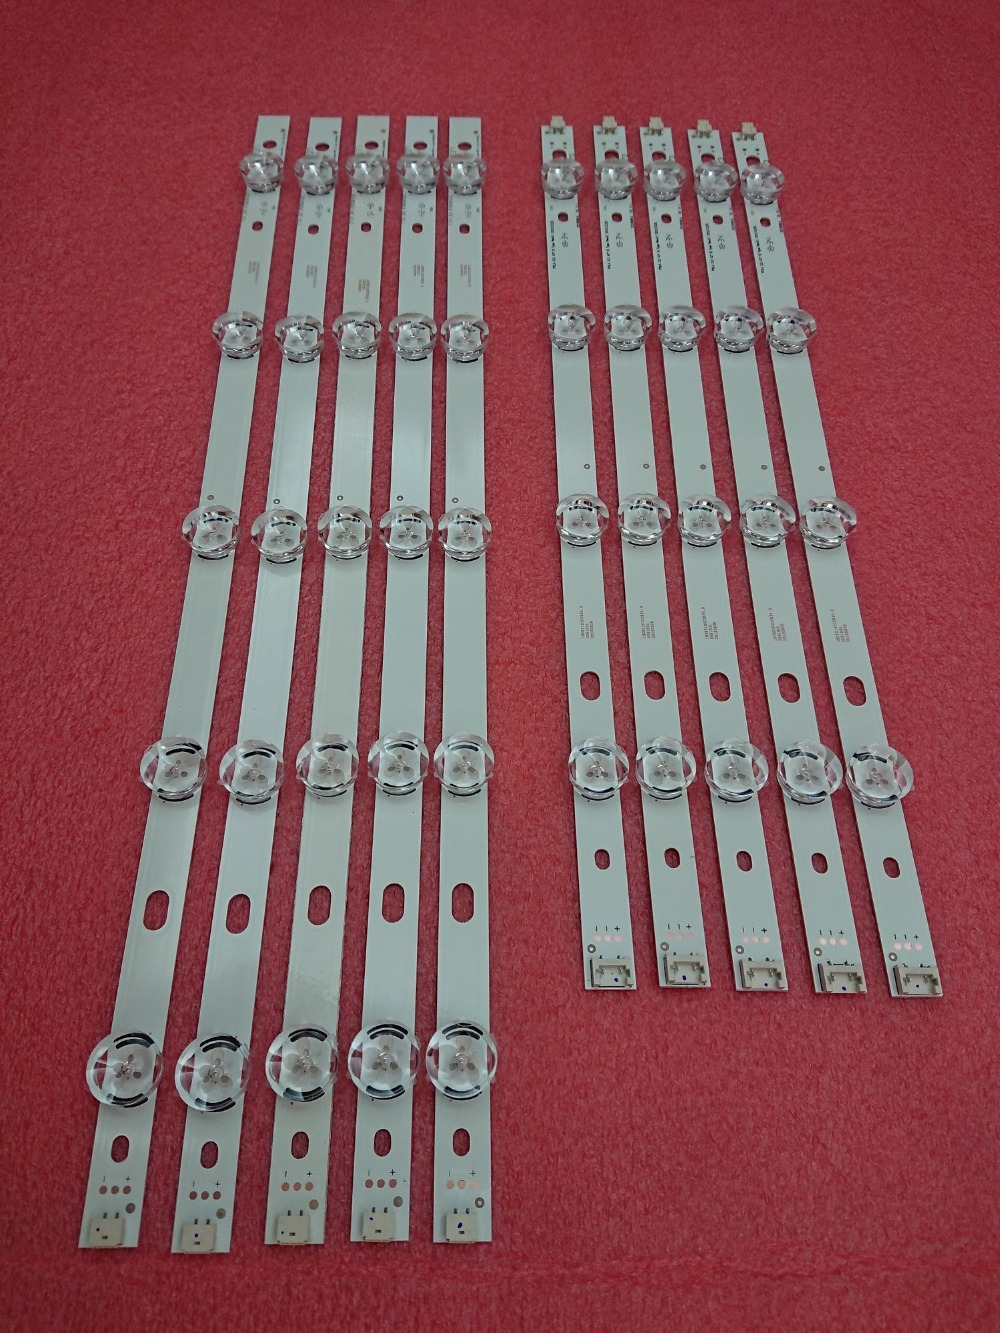 New 5set=50 PCS LED Backlight Strip Replacement For LG T420HVN05.2 Innotek POLA2.0 42 Inch A B POLA 2.0 42